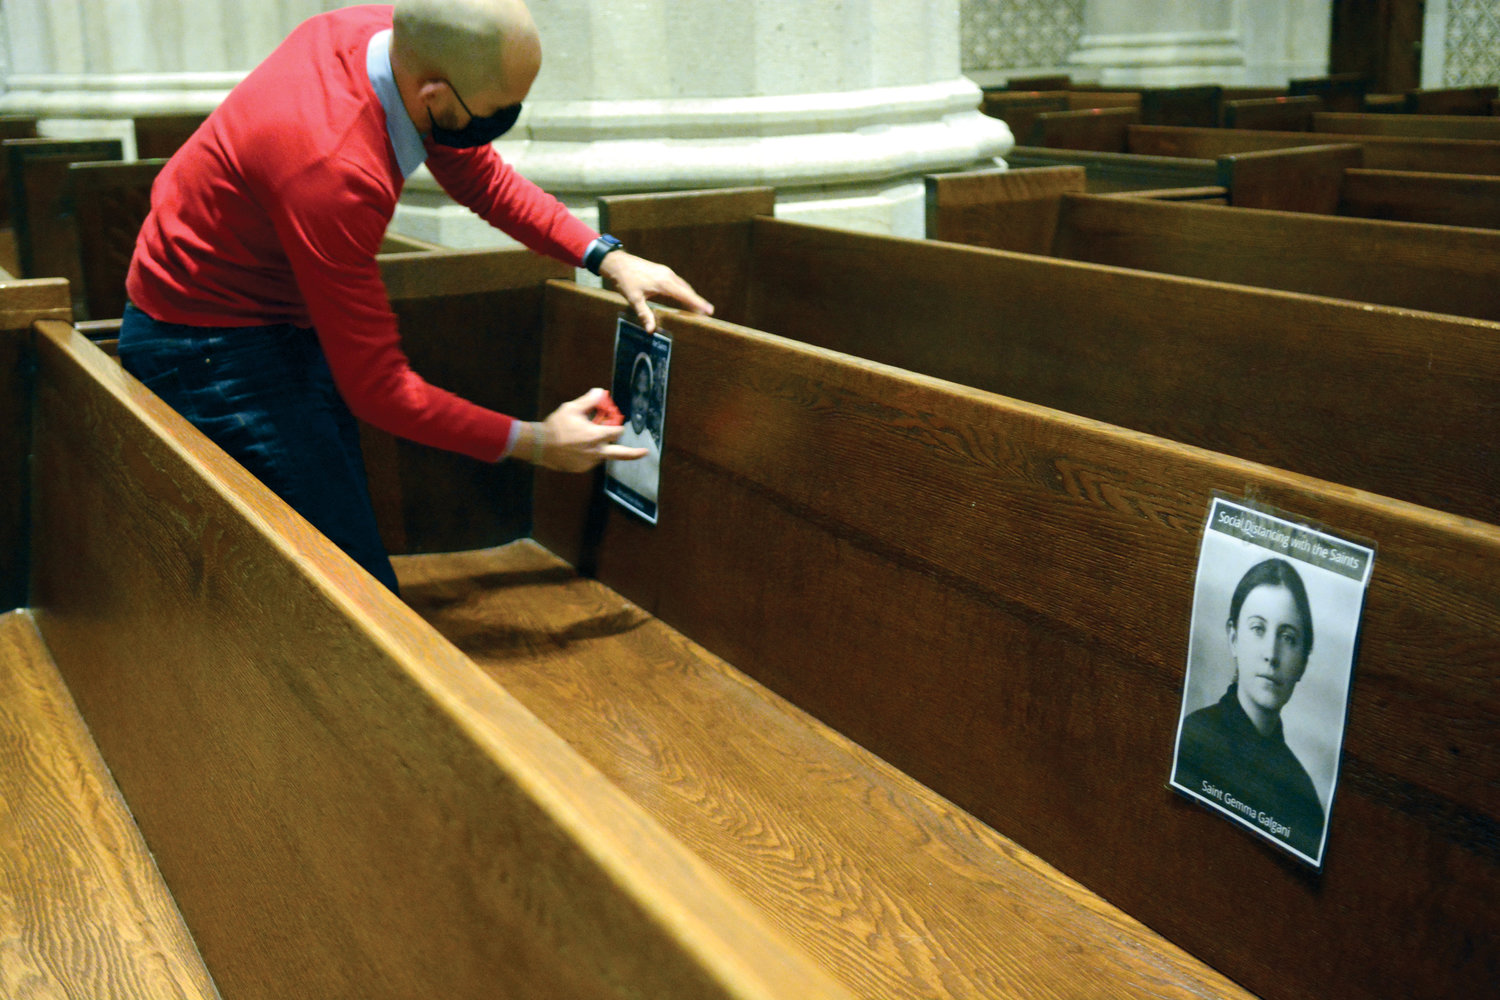 Images of saints are placed in the pews to designate where young adults were permitted to sit in observance of proper social distancing.